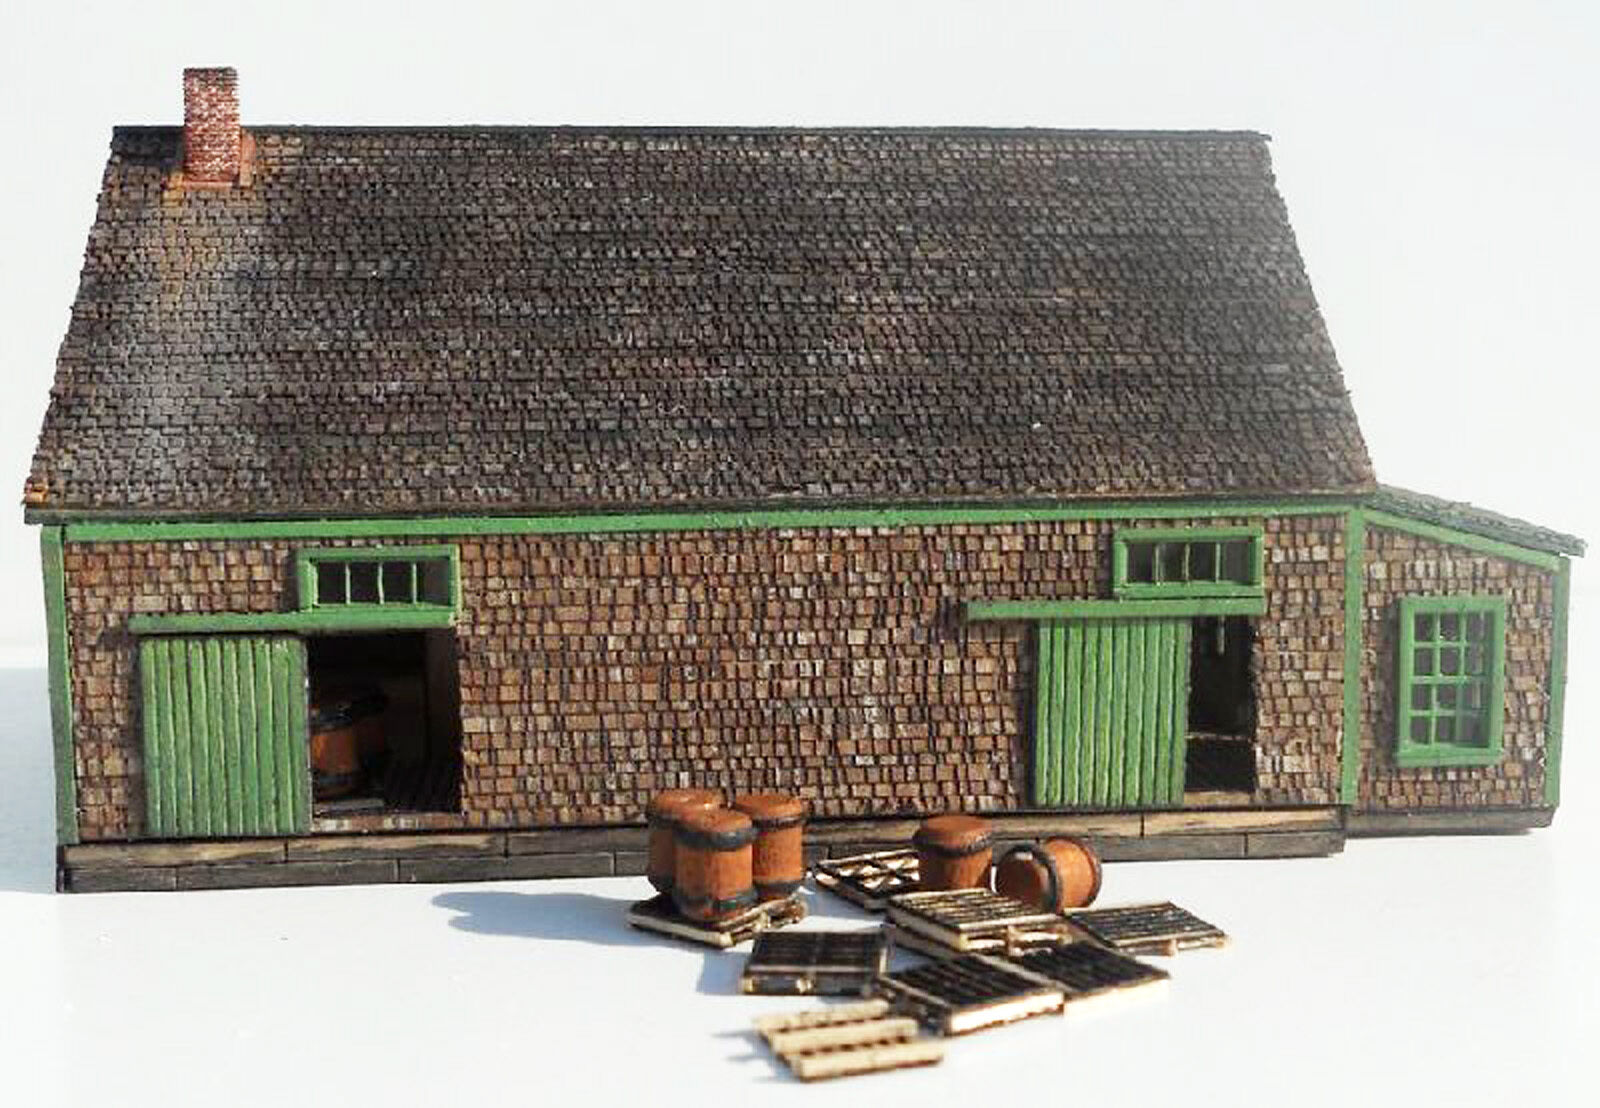 POTATO HOUSE N Scale Model Railroad Structure Unpainted Wood Laser Kit RSL302